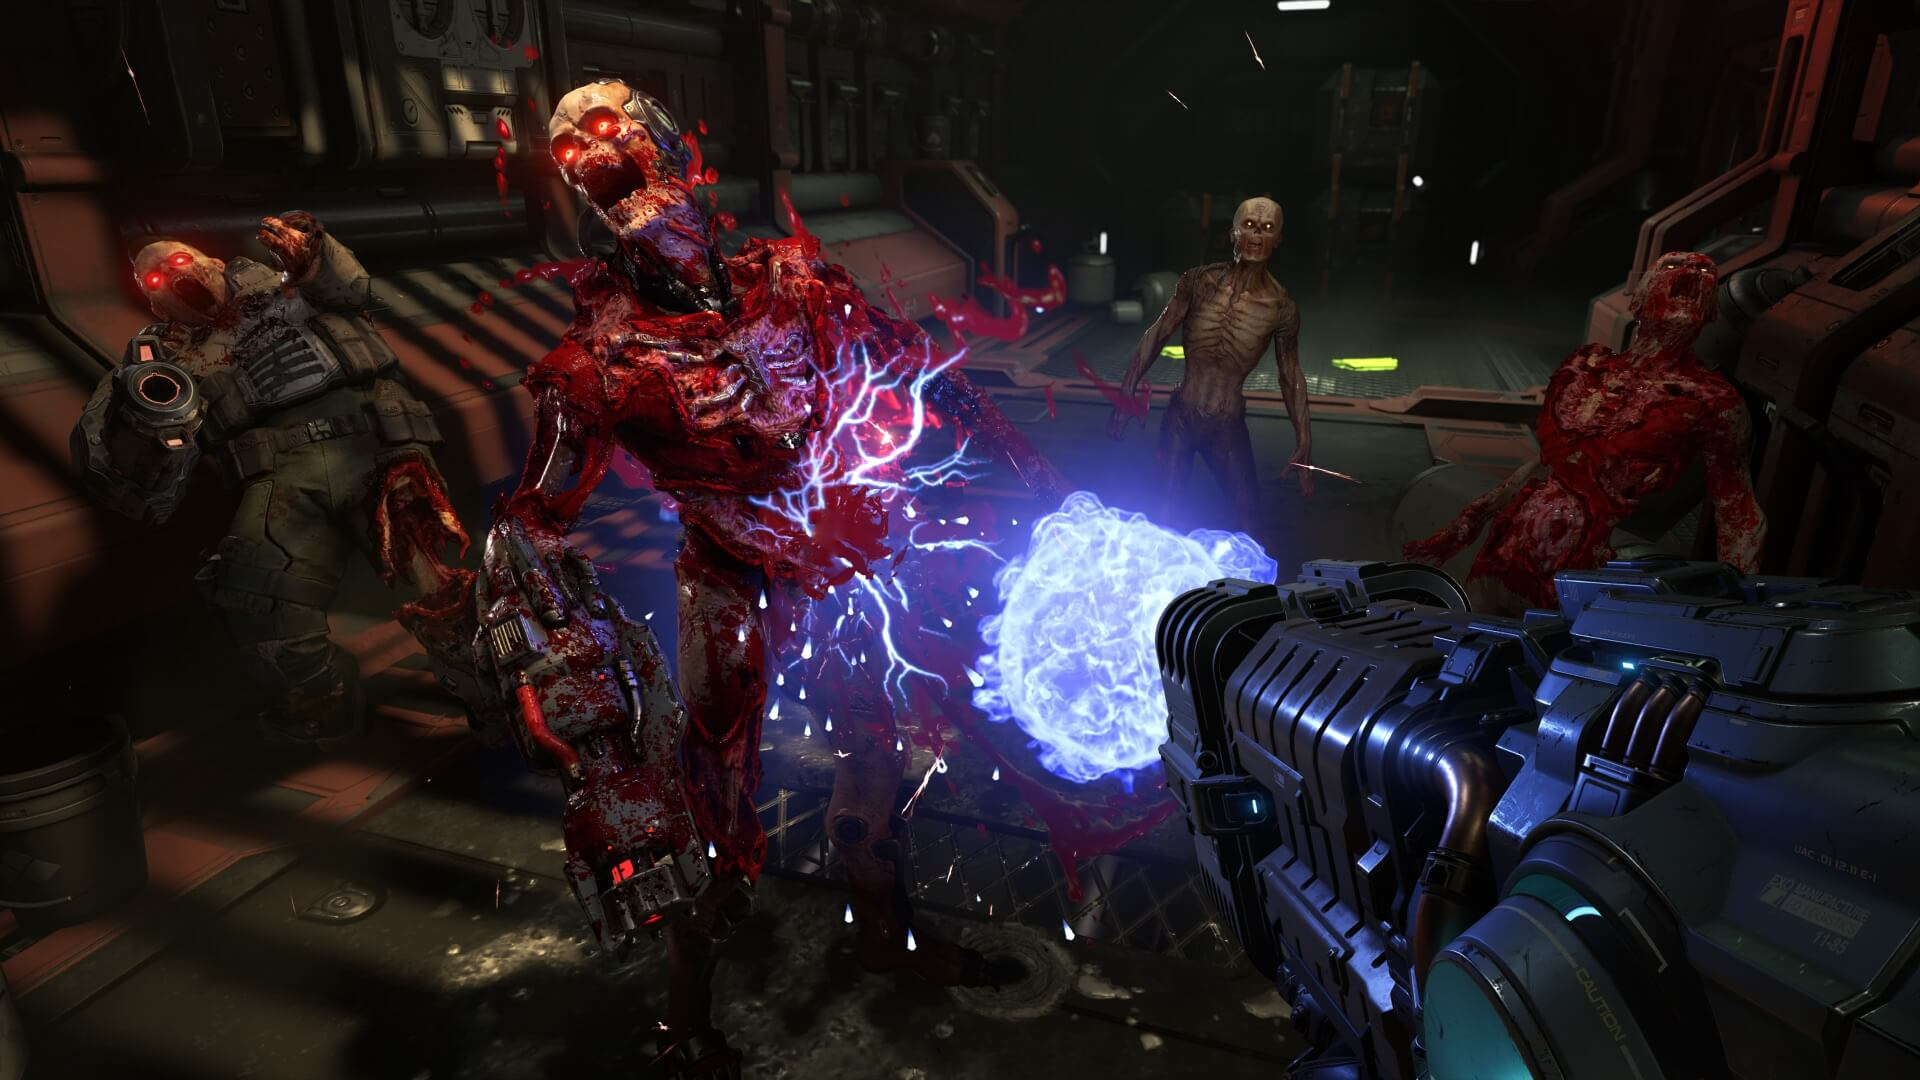 doom eternal fps game for pc